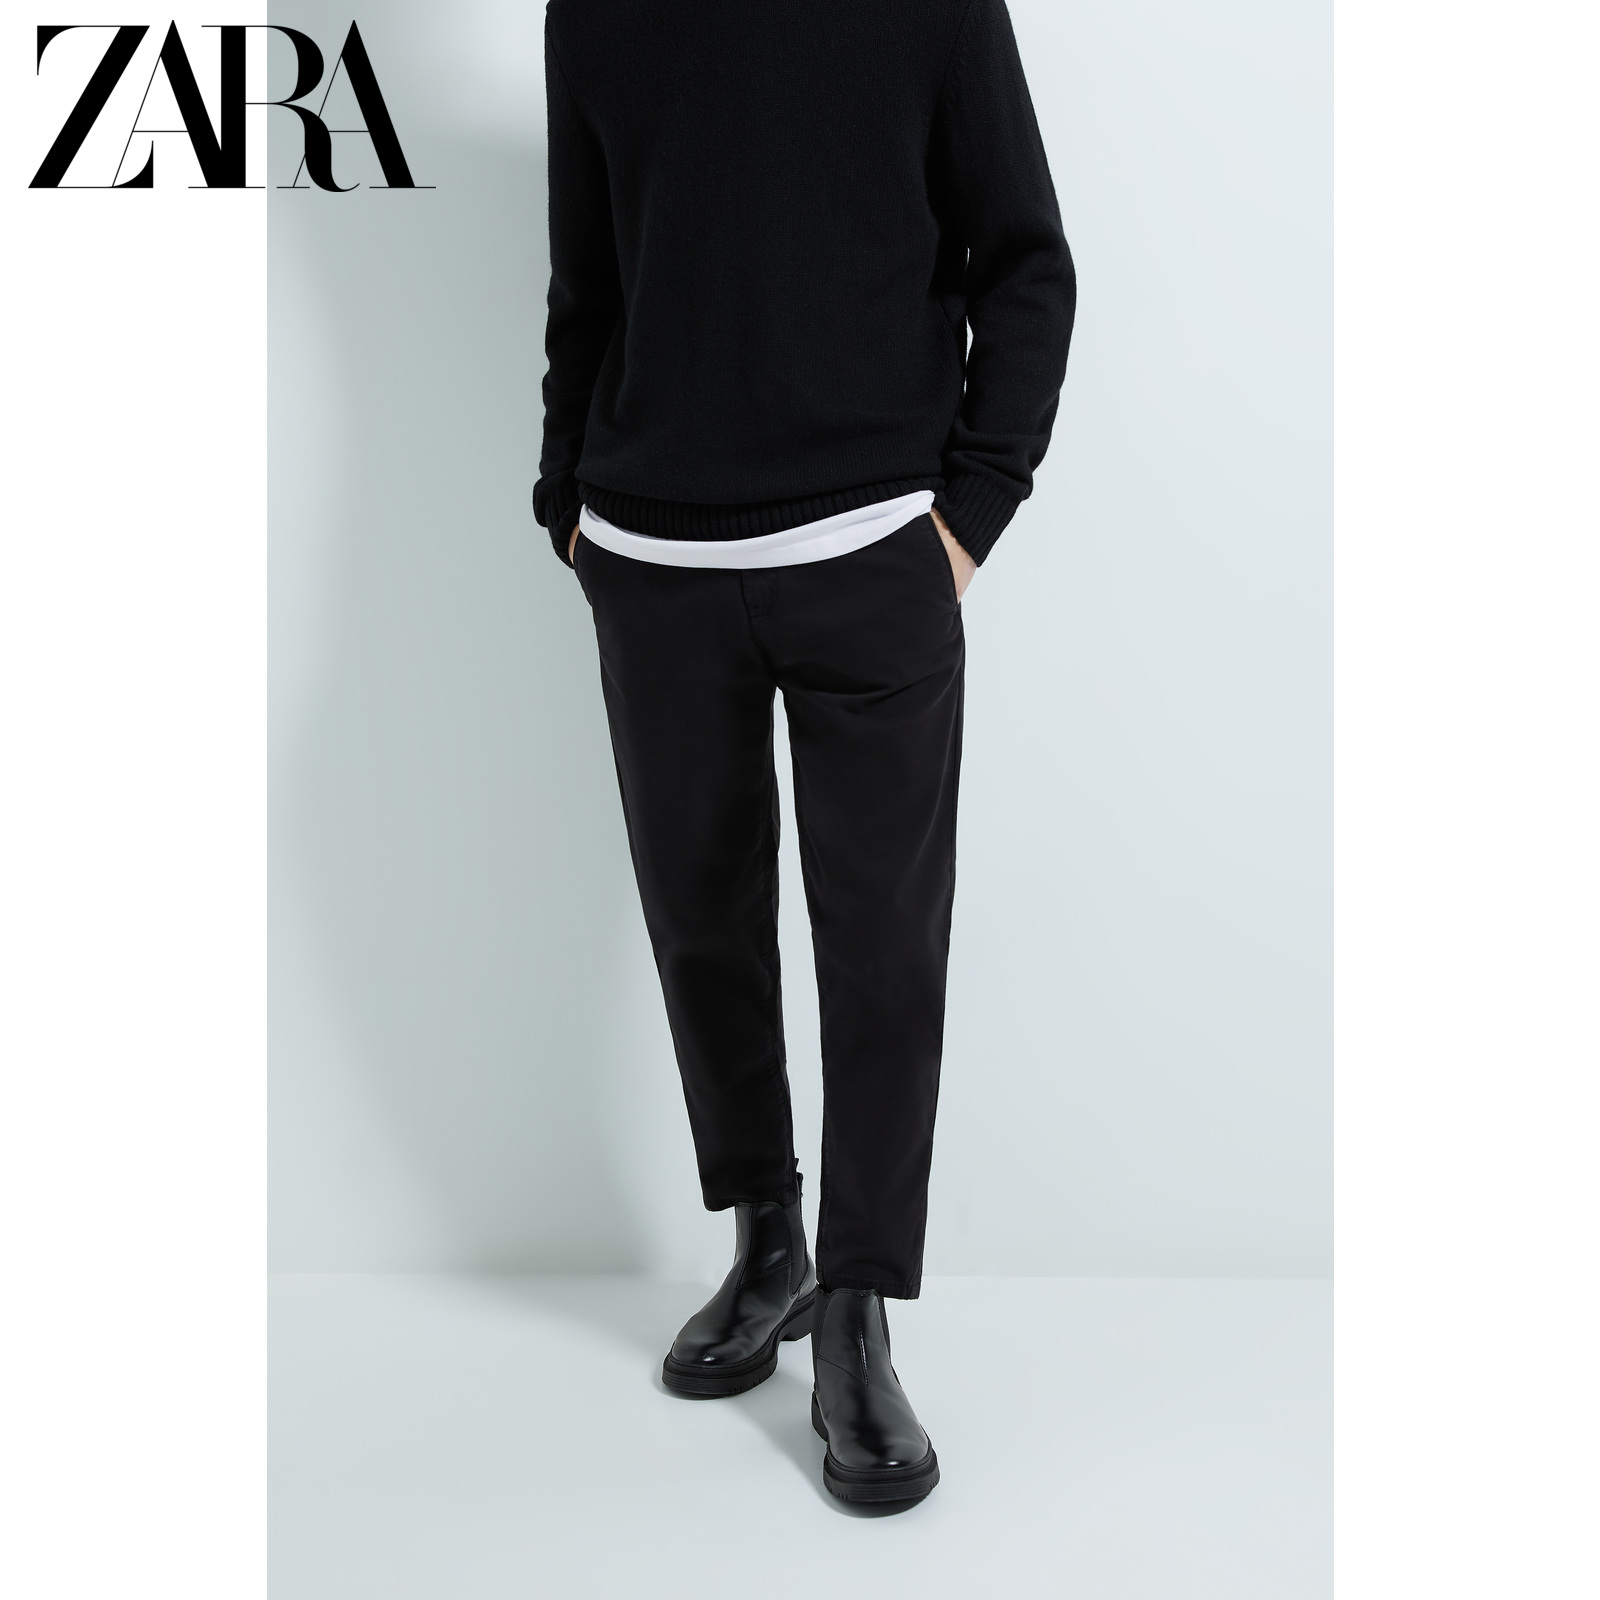 Zara new men's slim fit and ankle casual pants 01848300800